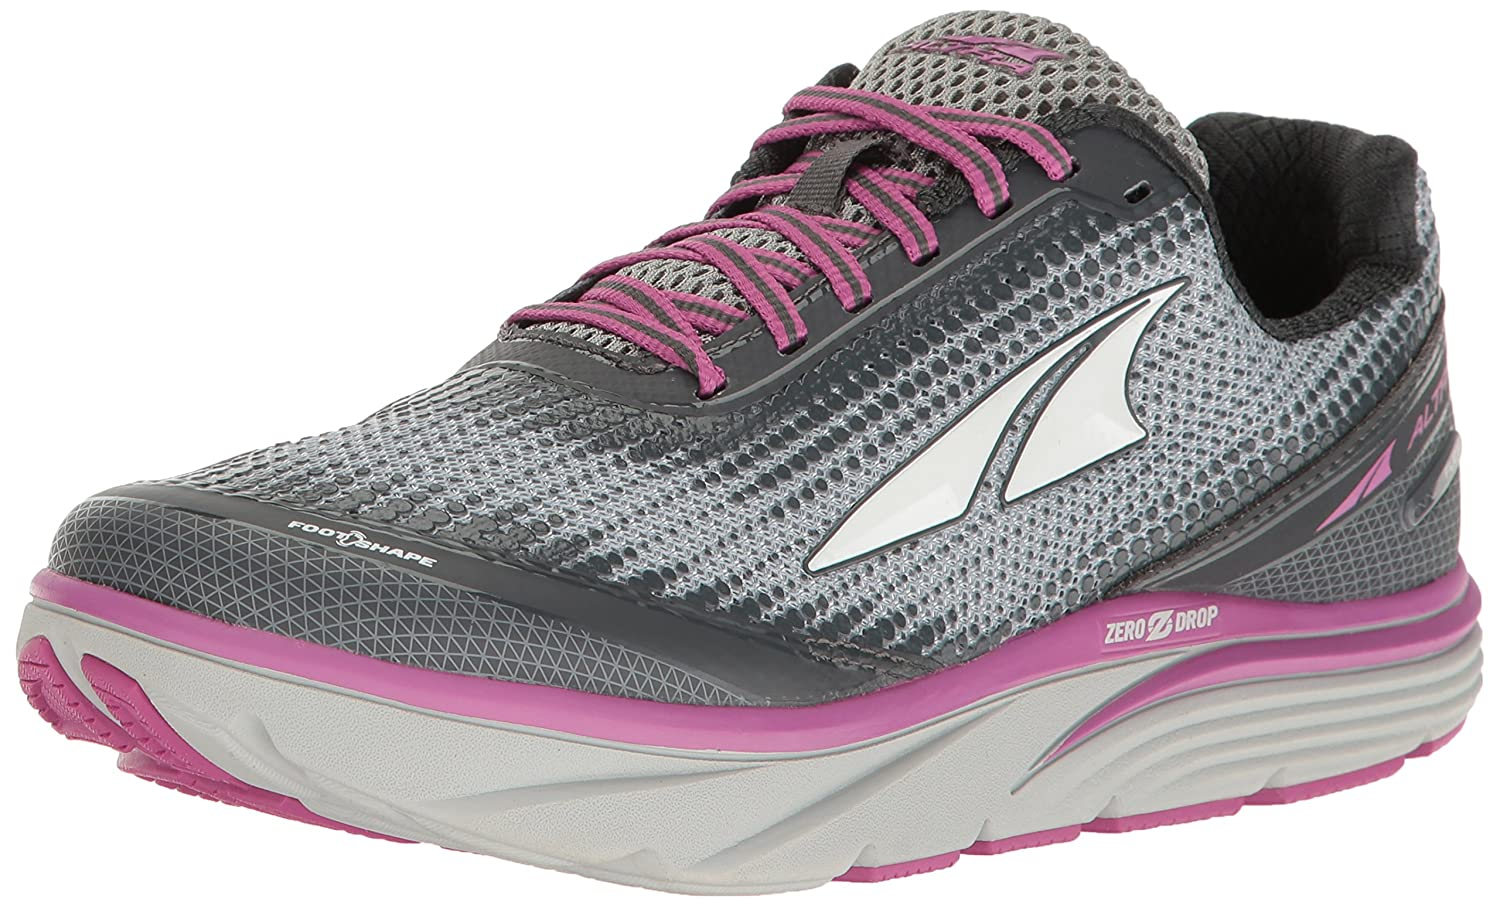 Altra Women's Torin 3.0 Running-Shoes B01MRZW1EV 6.5 B(M) US|Gray/Pink